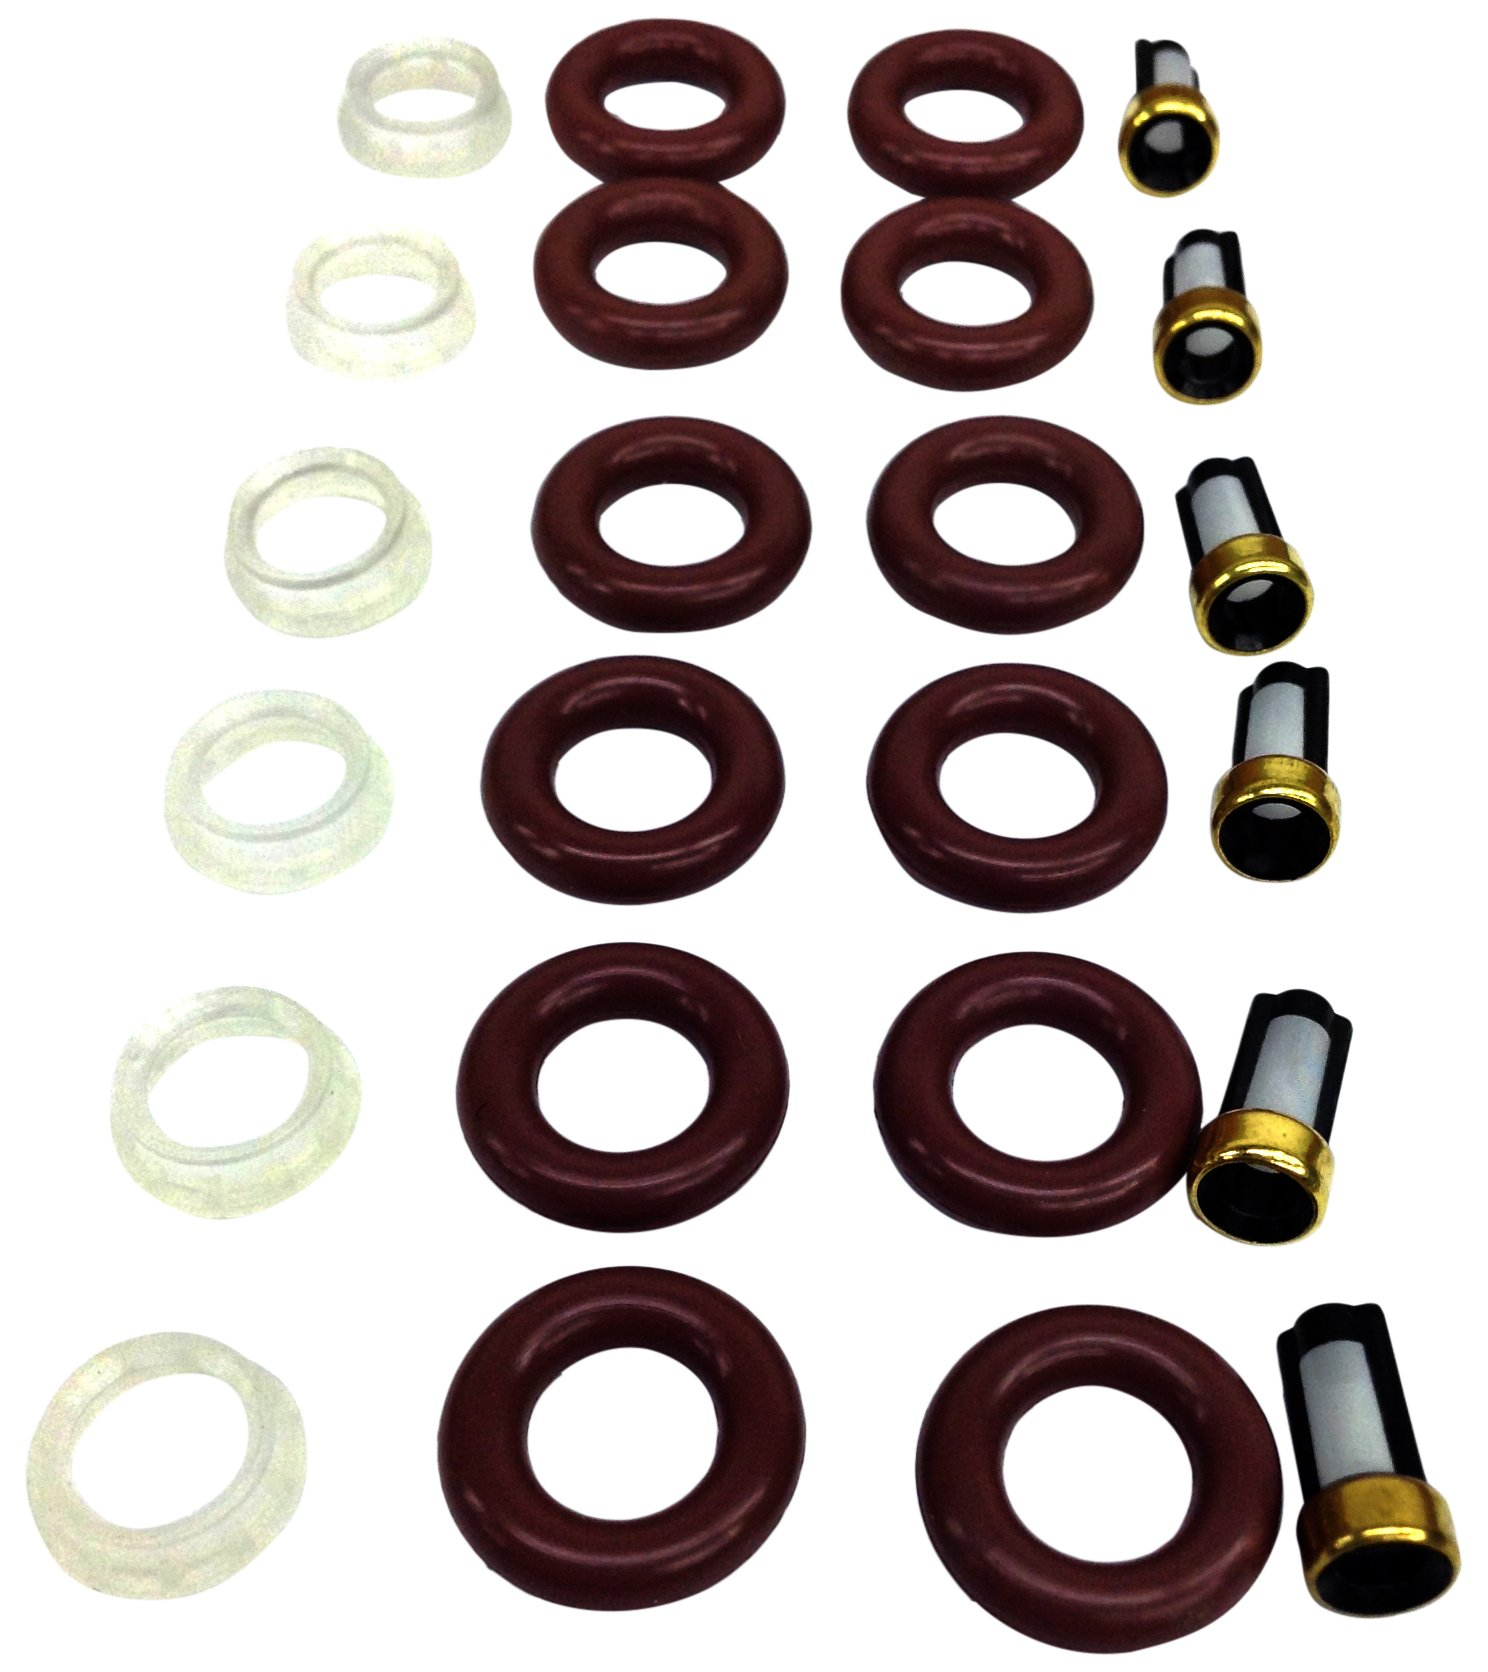 UREMCO 6-4 Fuel Injector Seal Kit 1 Pack